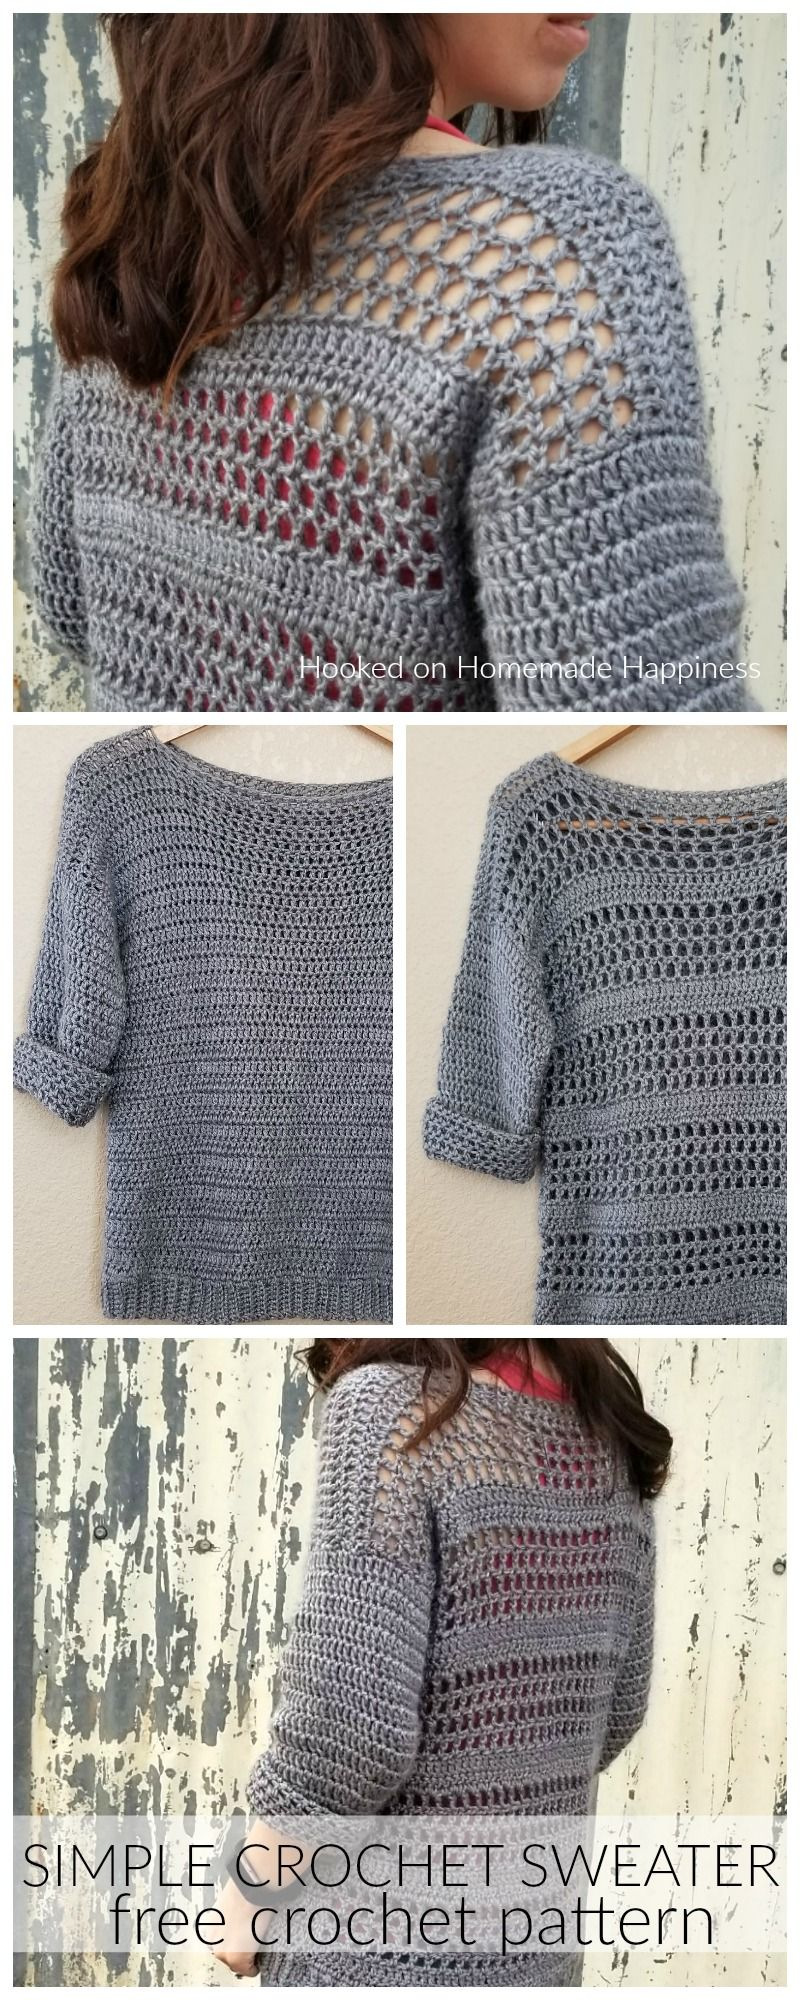 Simple Crochet Sweater Pattern | Pinterest | Suéteres de crochet ...